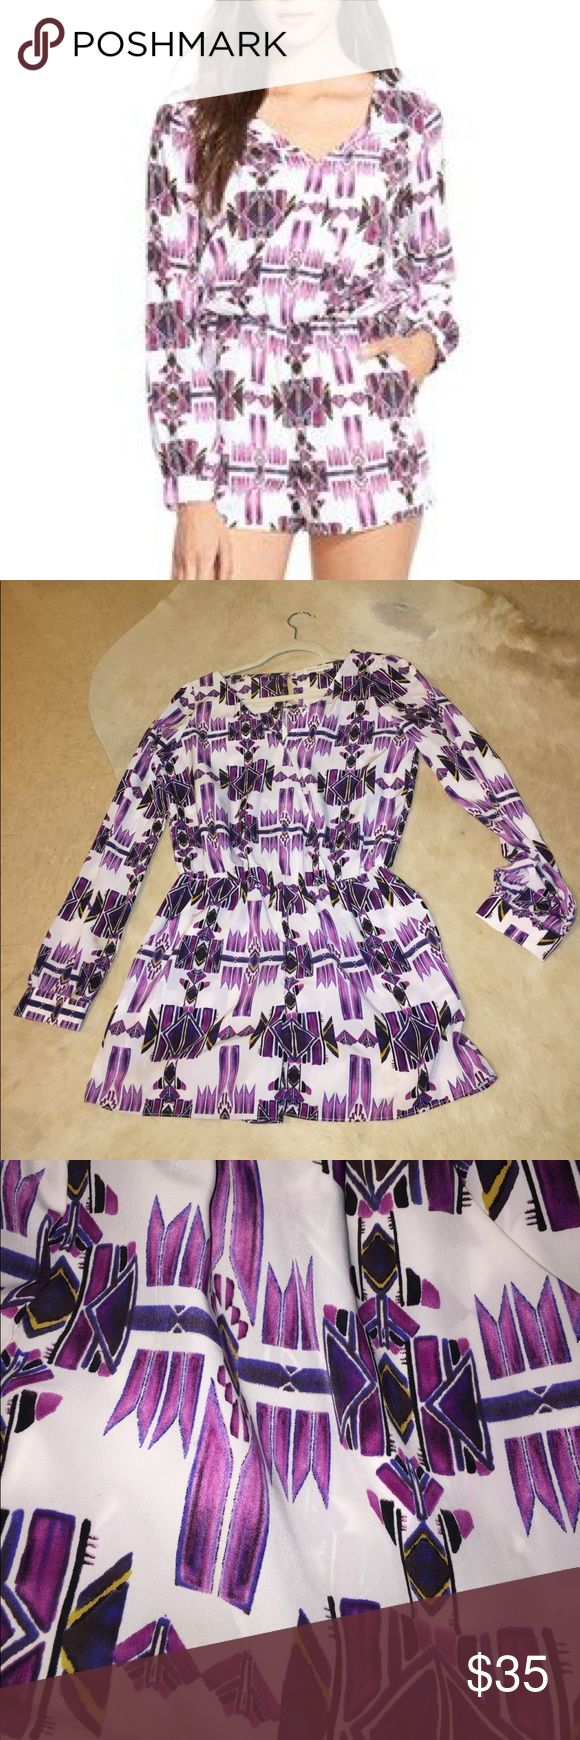 Socialite purple okay print surprise romper Purple surplice ikat / Aztec print romper. Only worn once. Long sleeve size medium. Social brand purchase from nordstroms. Great conditions. Perfect for lsu games/ summer! socialite Pants Jumpsuits & Rompers